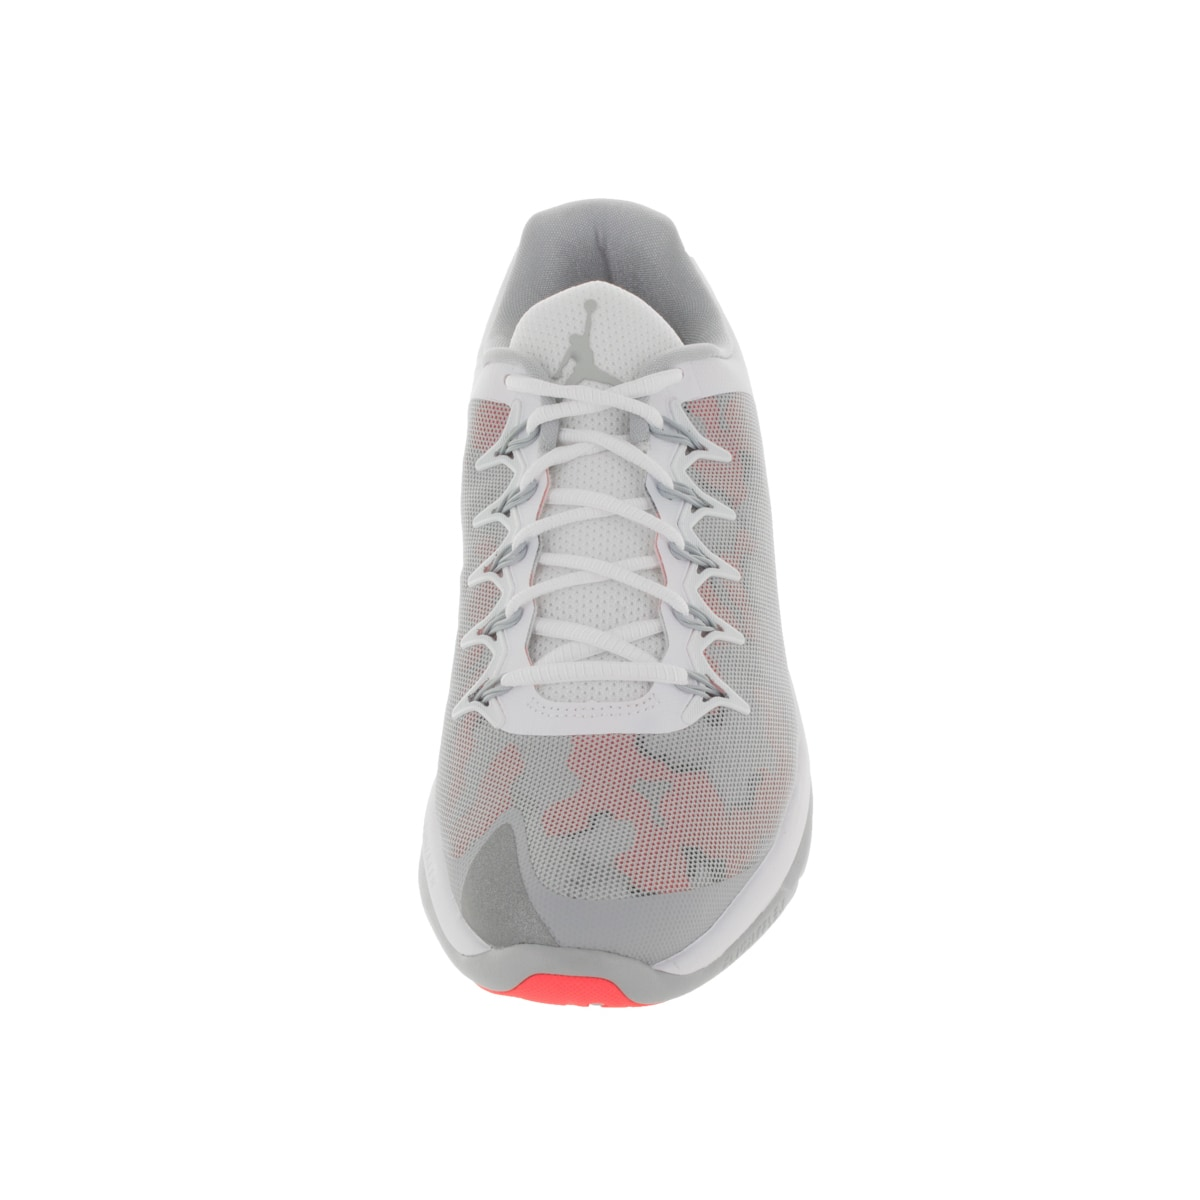 fad80c7554b2a8 Shop Nike Jordan Men s Jordan Flight Runner 2 White Wolf Grey Infrared 23  Running Shoe - Free Shipping Today - Overstock - 12318519